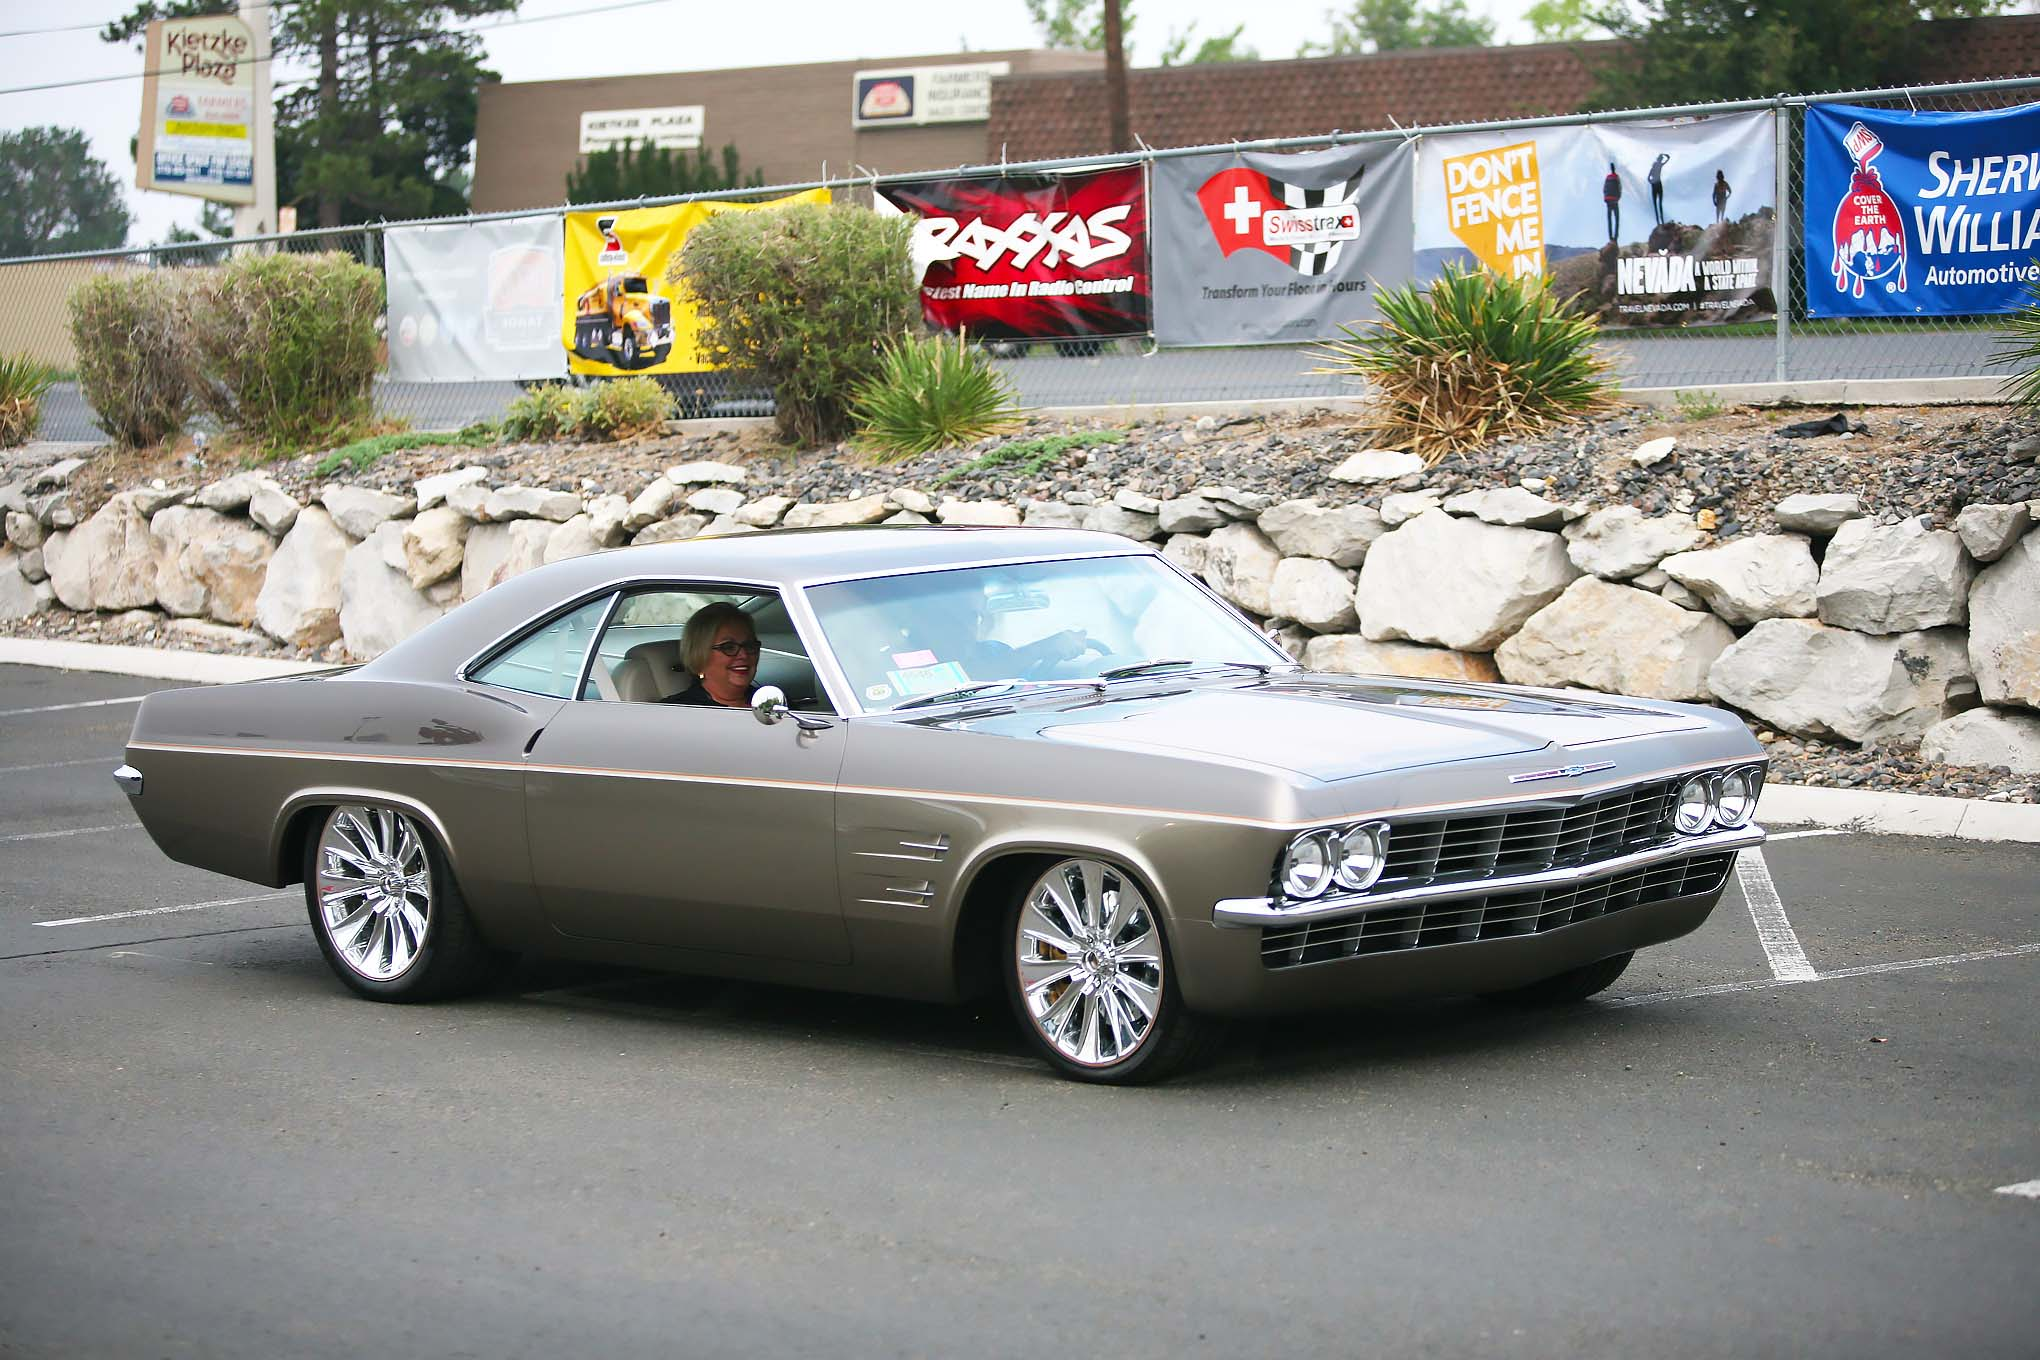 Don and Amy Voth's 1965 Chevrolet Impala built by Chip Foose